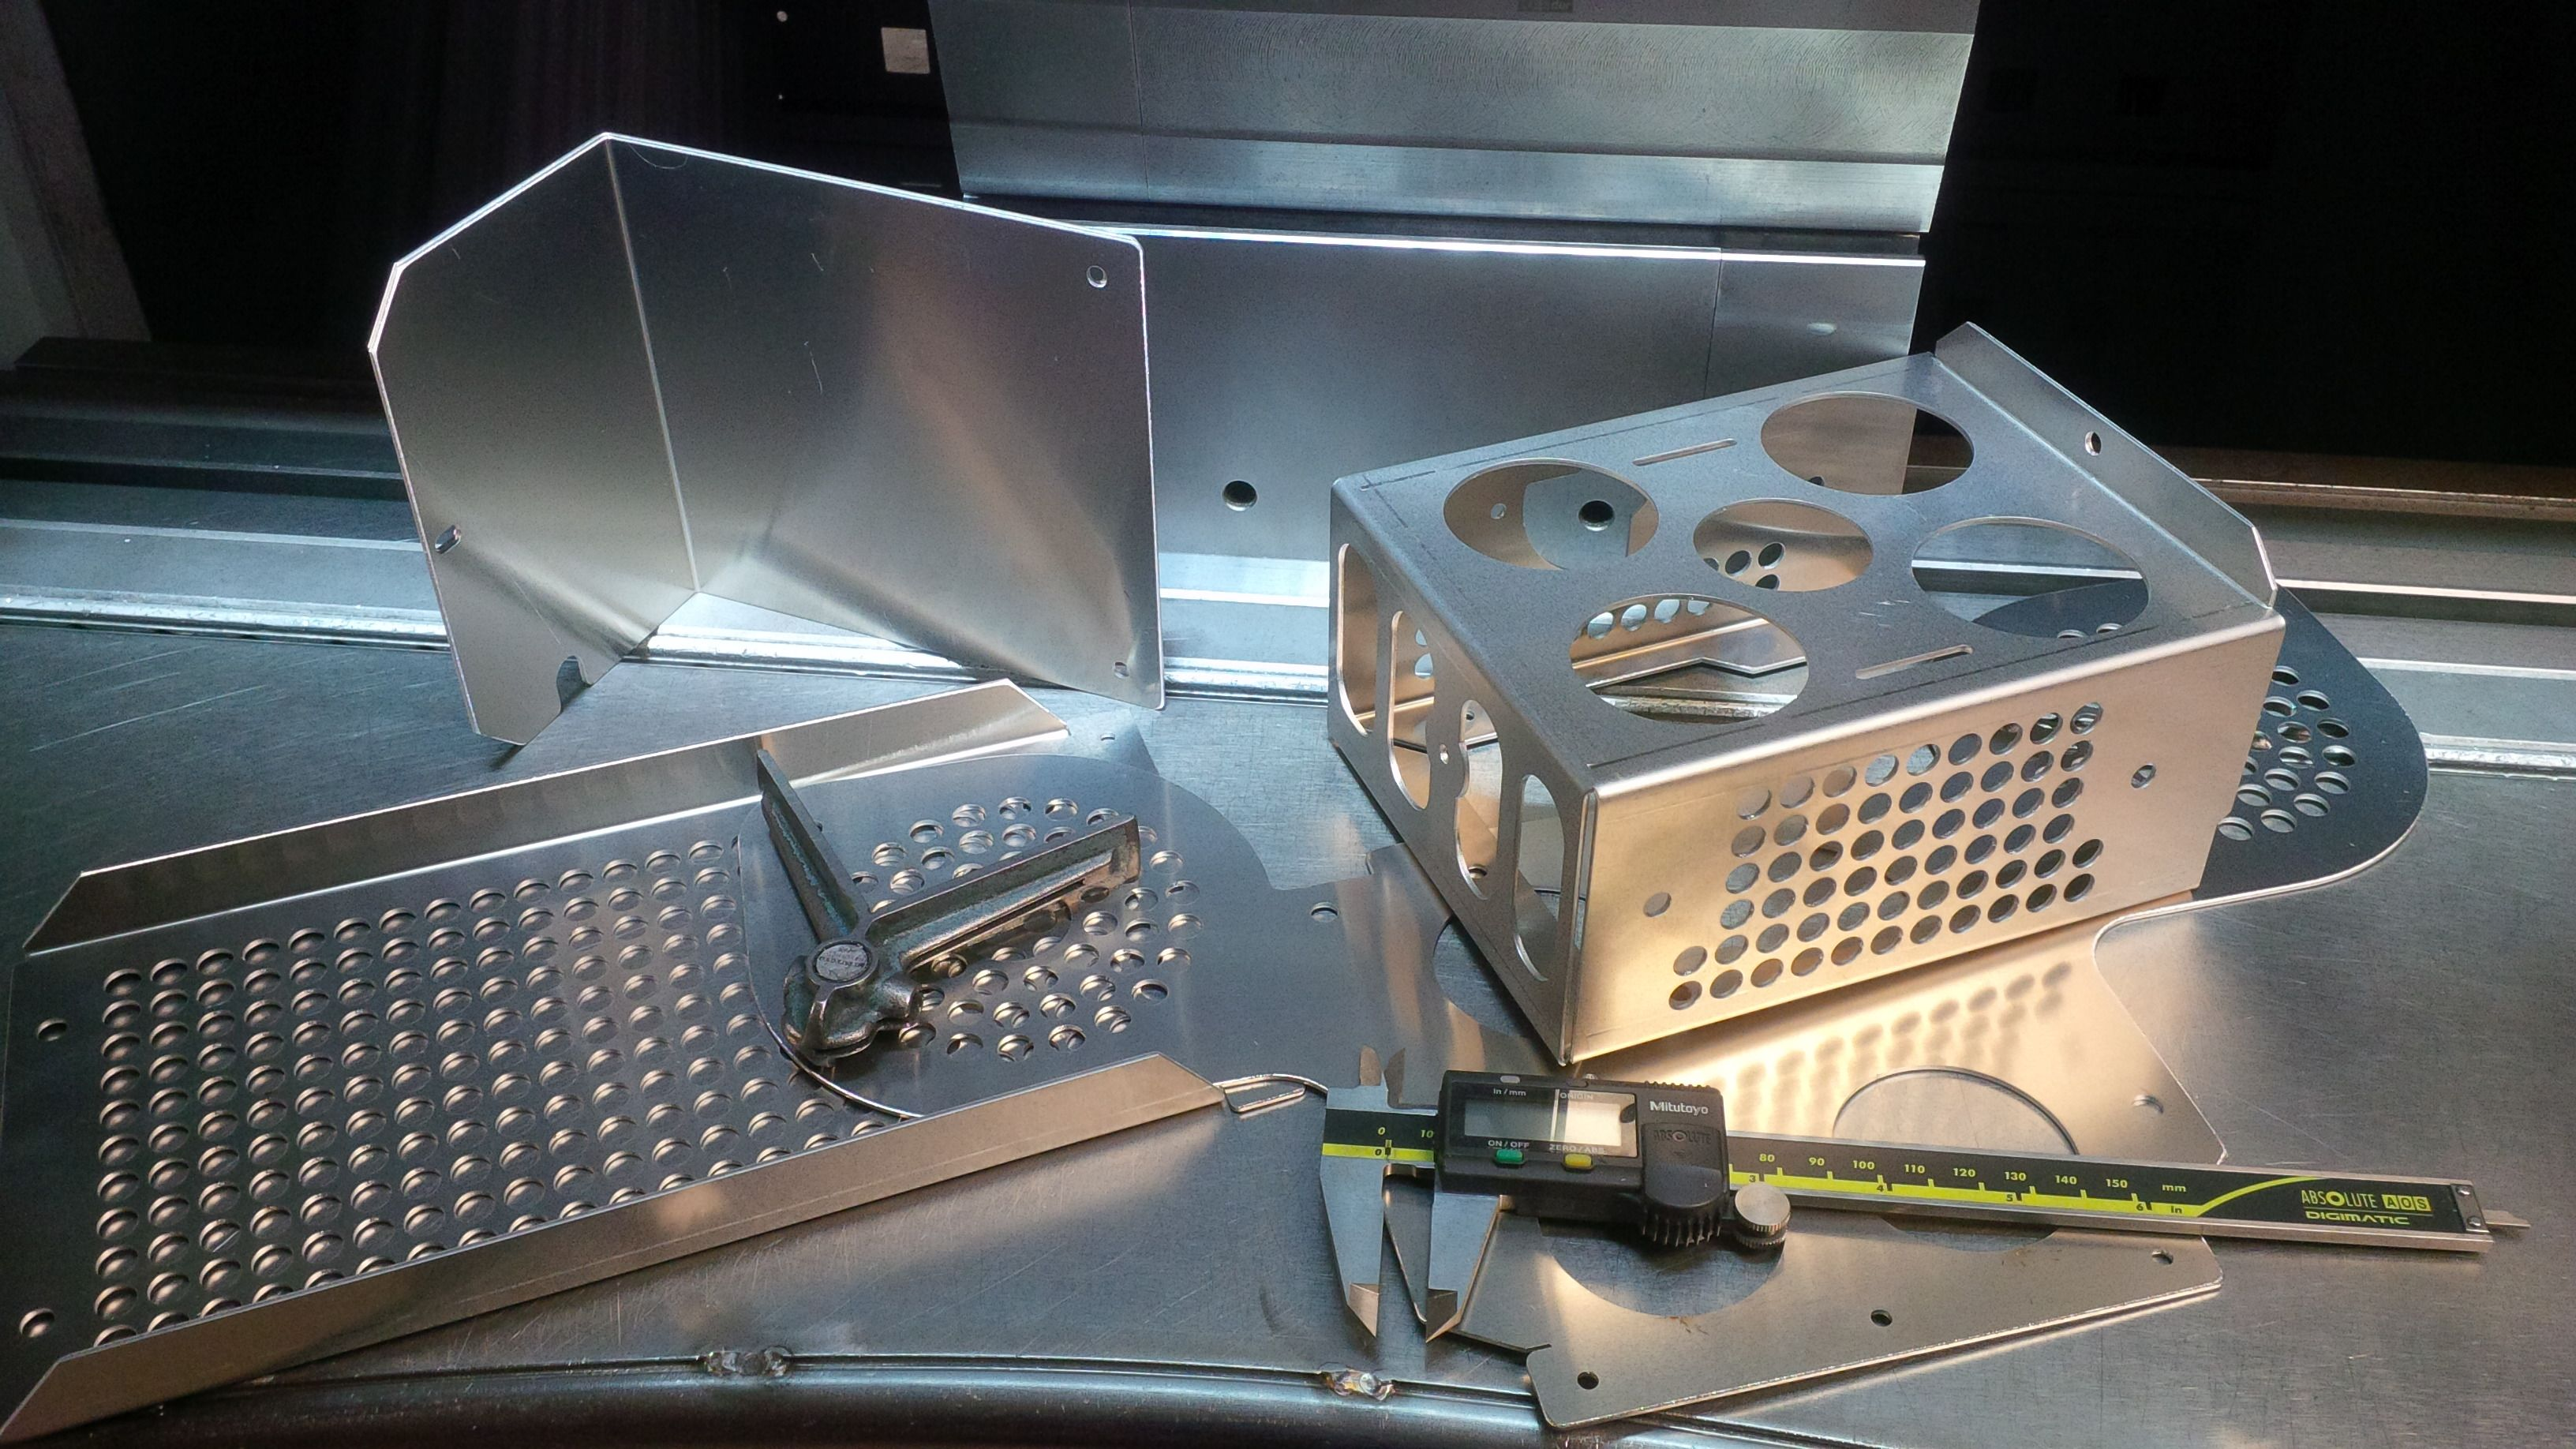 Pin En Sheet Metal Boxes And Enclosures Produced By V And F Sheet Metal In Fareham Hampshire